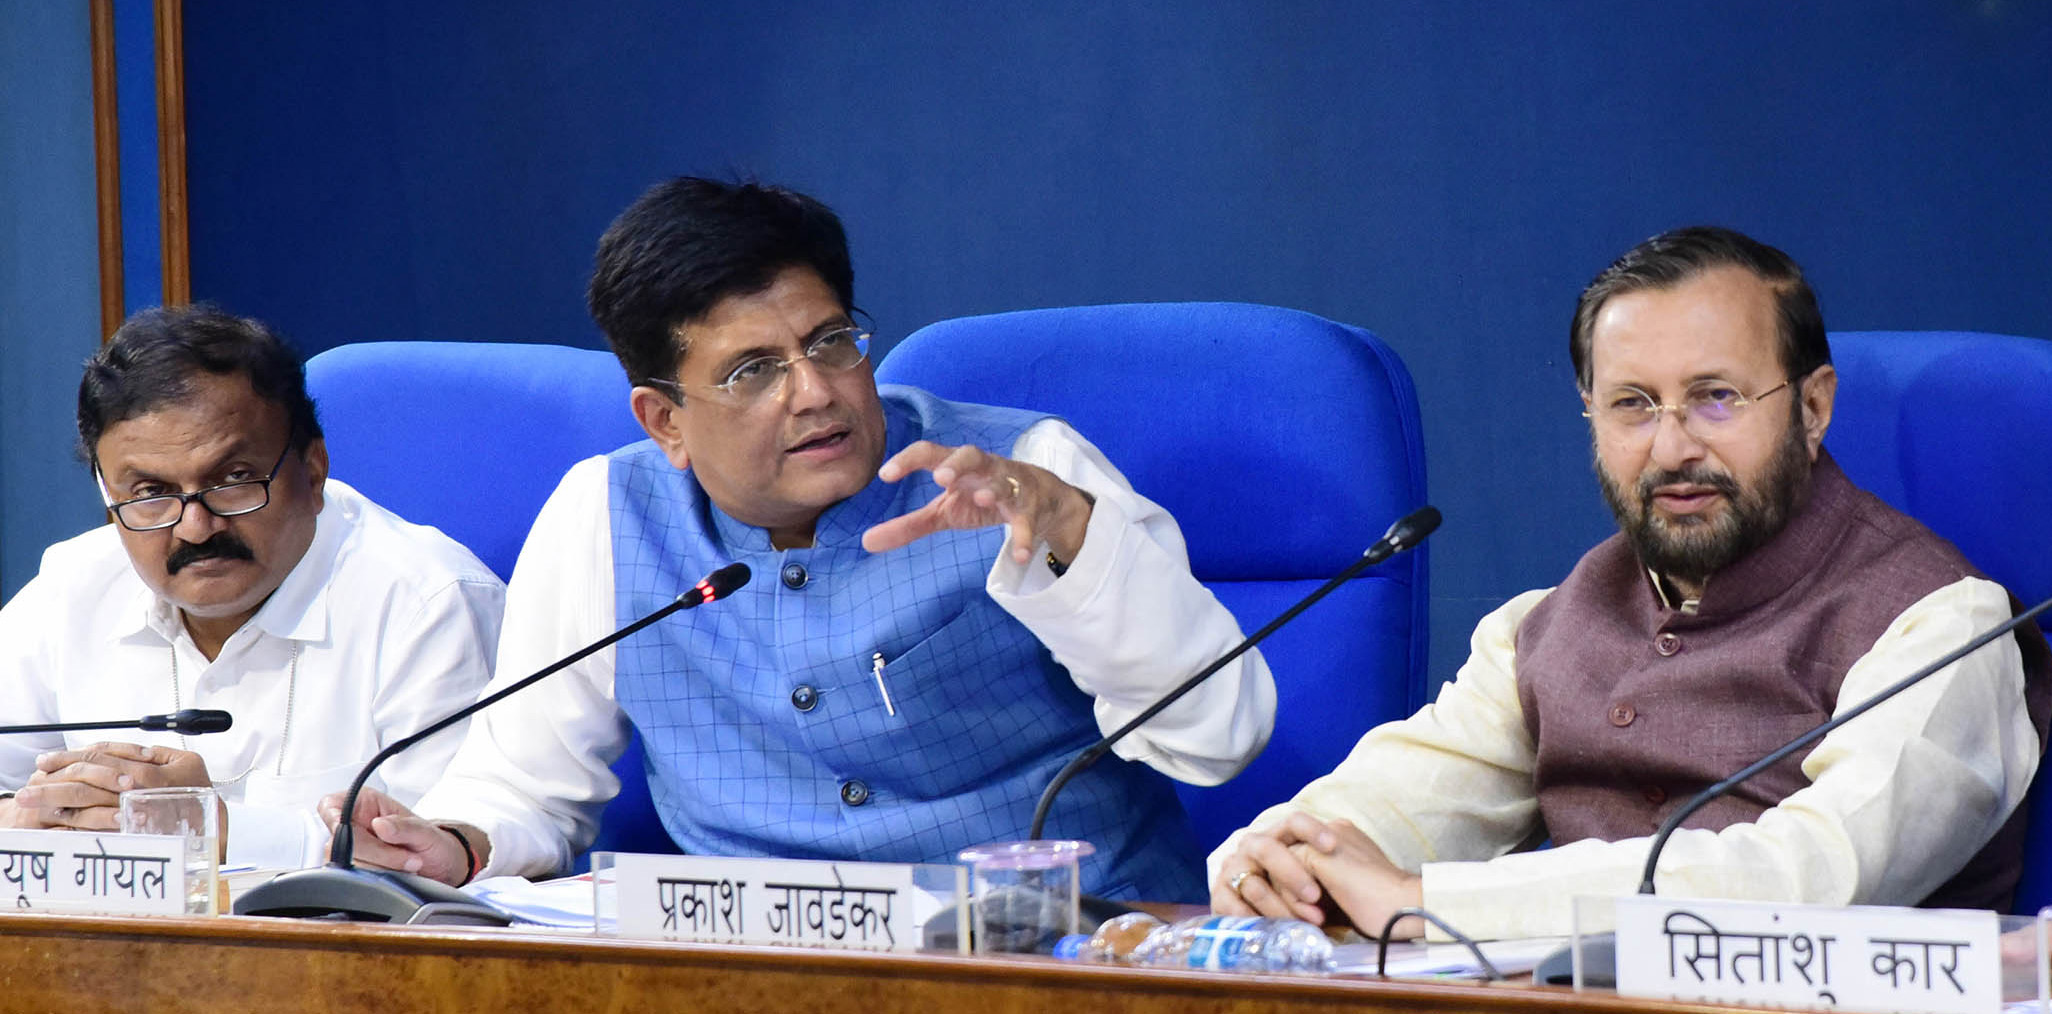 The Union Minister for Environment, Forest & Climate Change and Information & Broadcasting, Shri Prakash Javadekar and the Union Minister for Railways and Commerce & Industry, Shri Piyush Goyal briefing the media on Cabinet Decisions, in New Delhi on August 28, 2019.